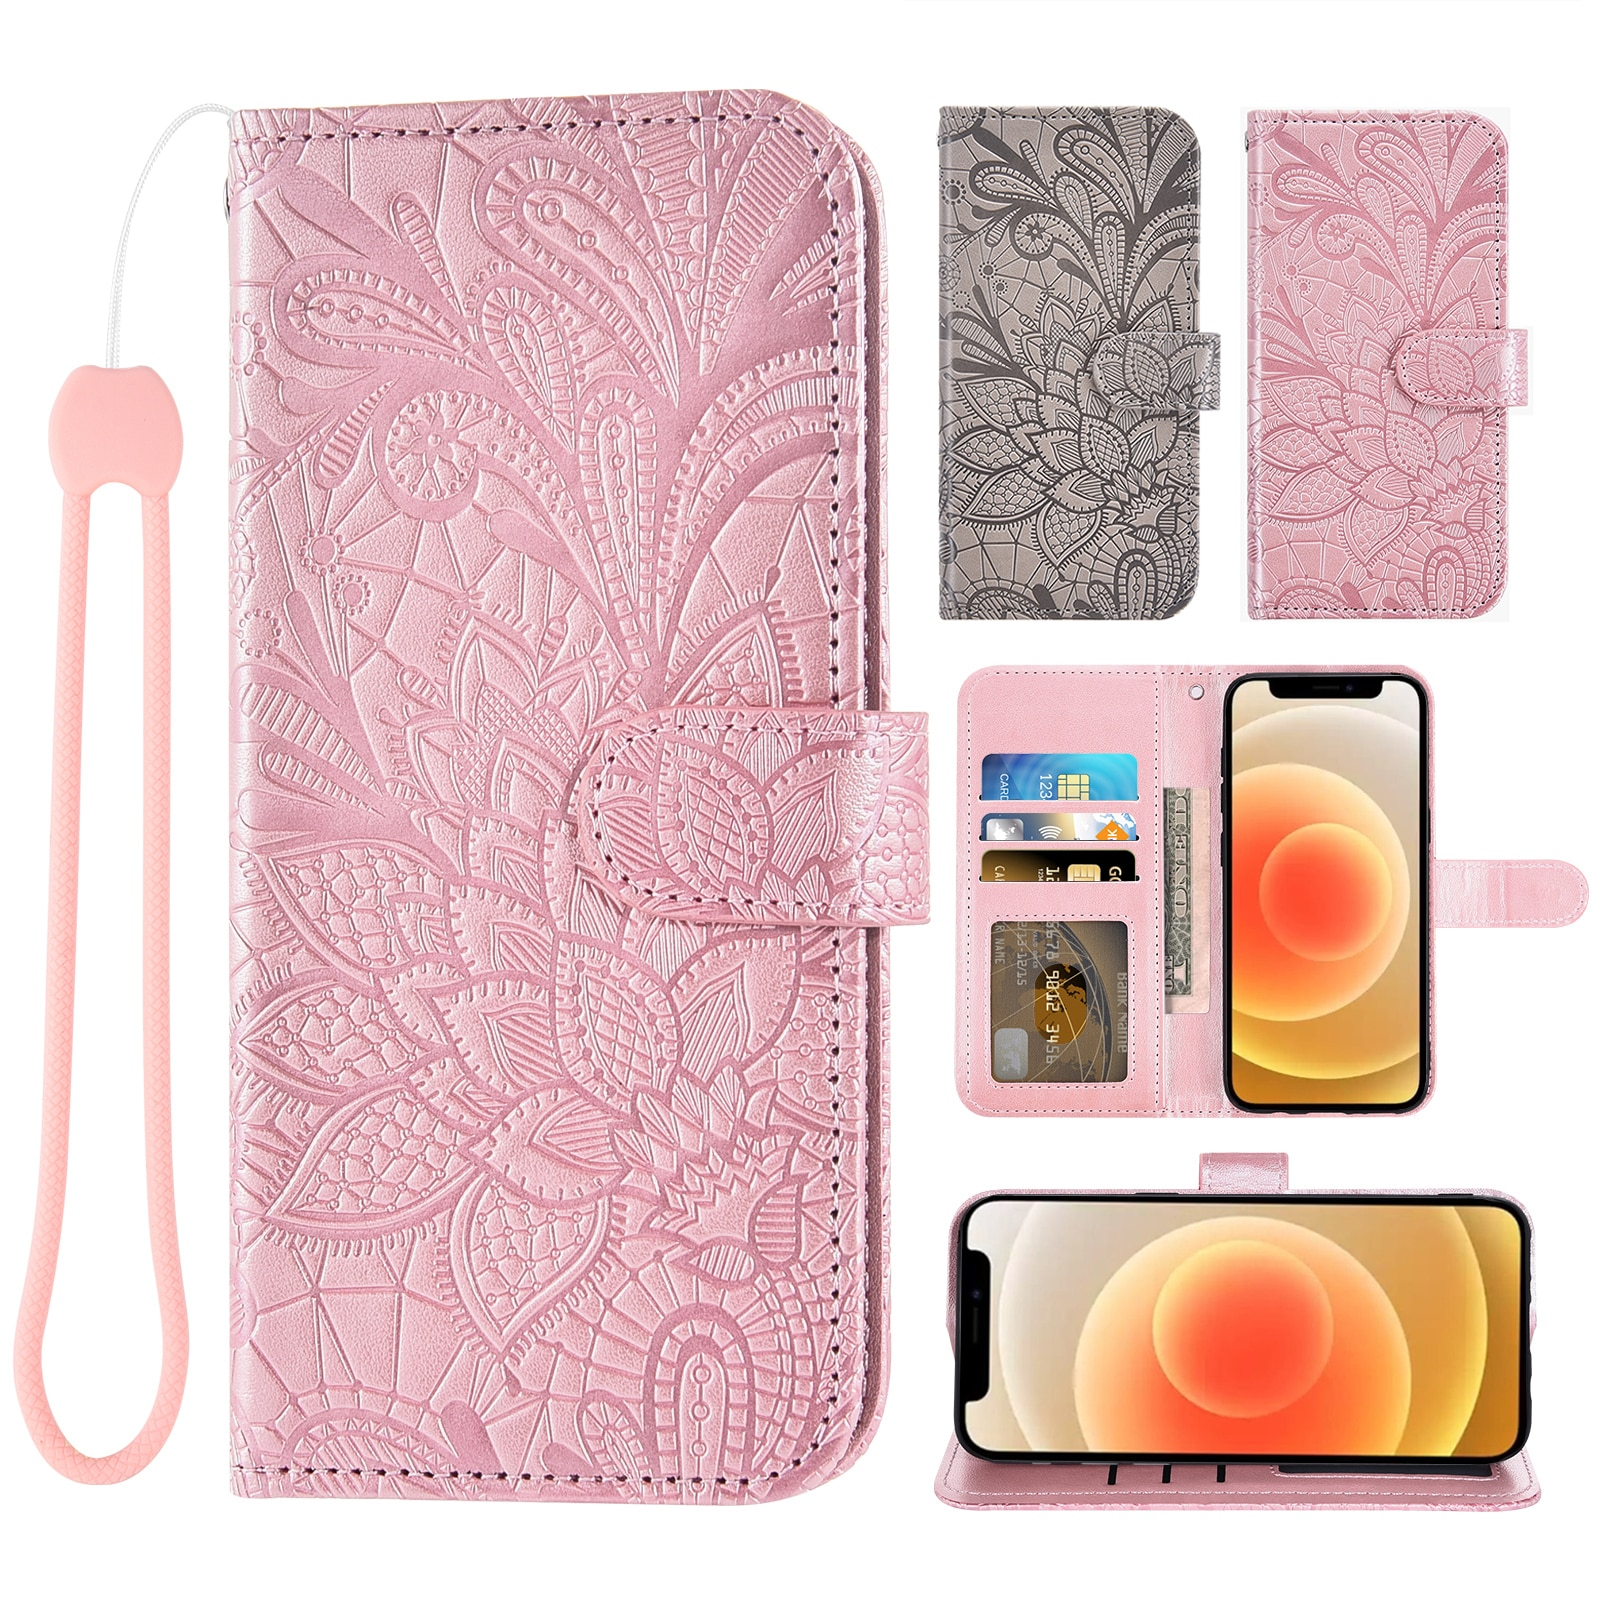 A sincere gift Luxury Flip Cover Leather Wallet Phone Case For UMIDIGI S5 Pro Credit card slot wrist